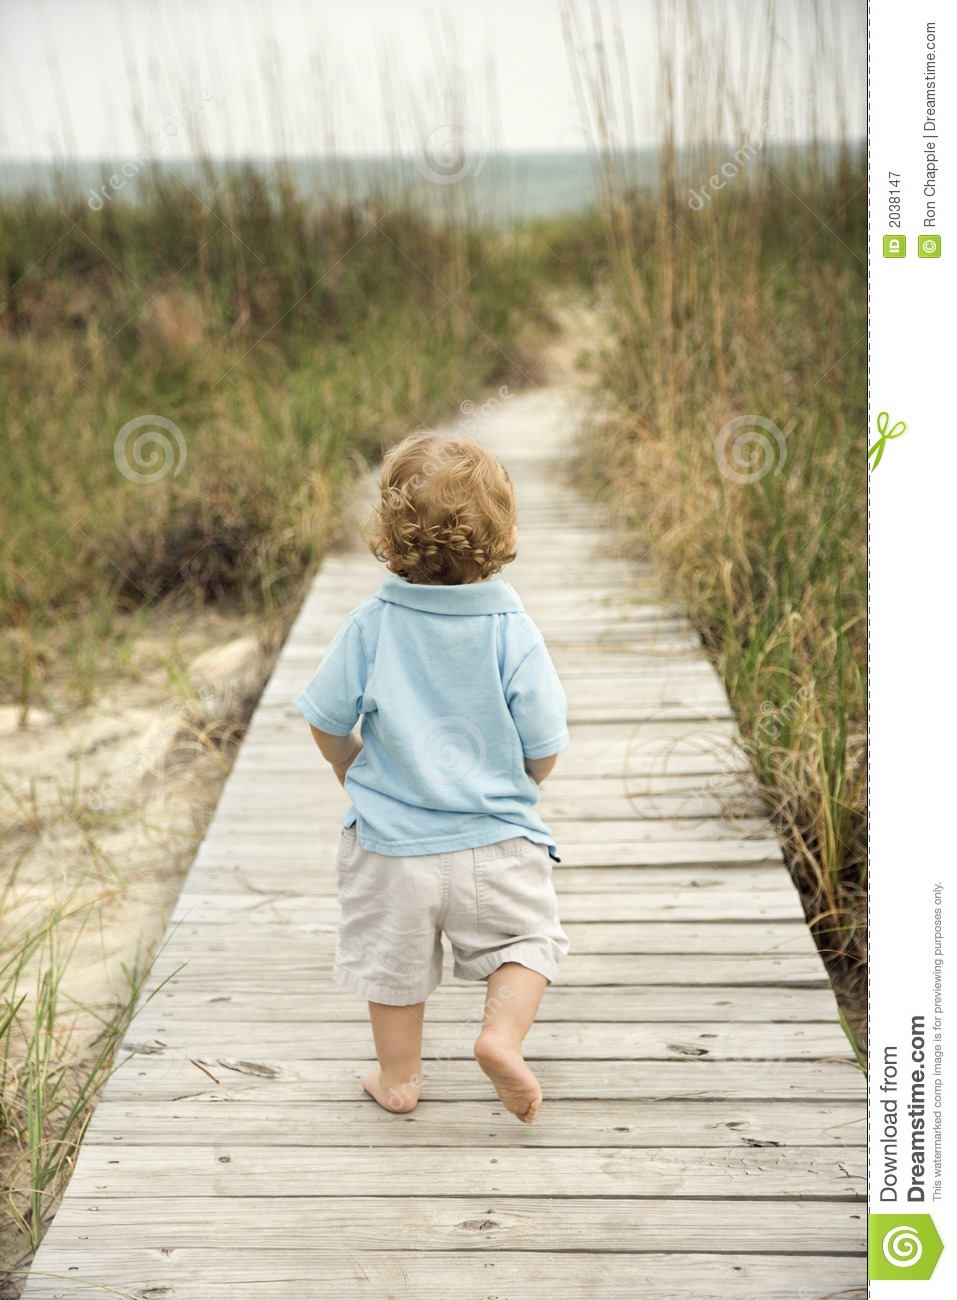 Baby Toddler And Town Little Boy Walking Down Beach Walkway Royalty Free Stock